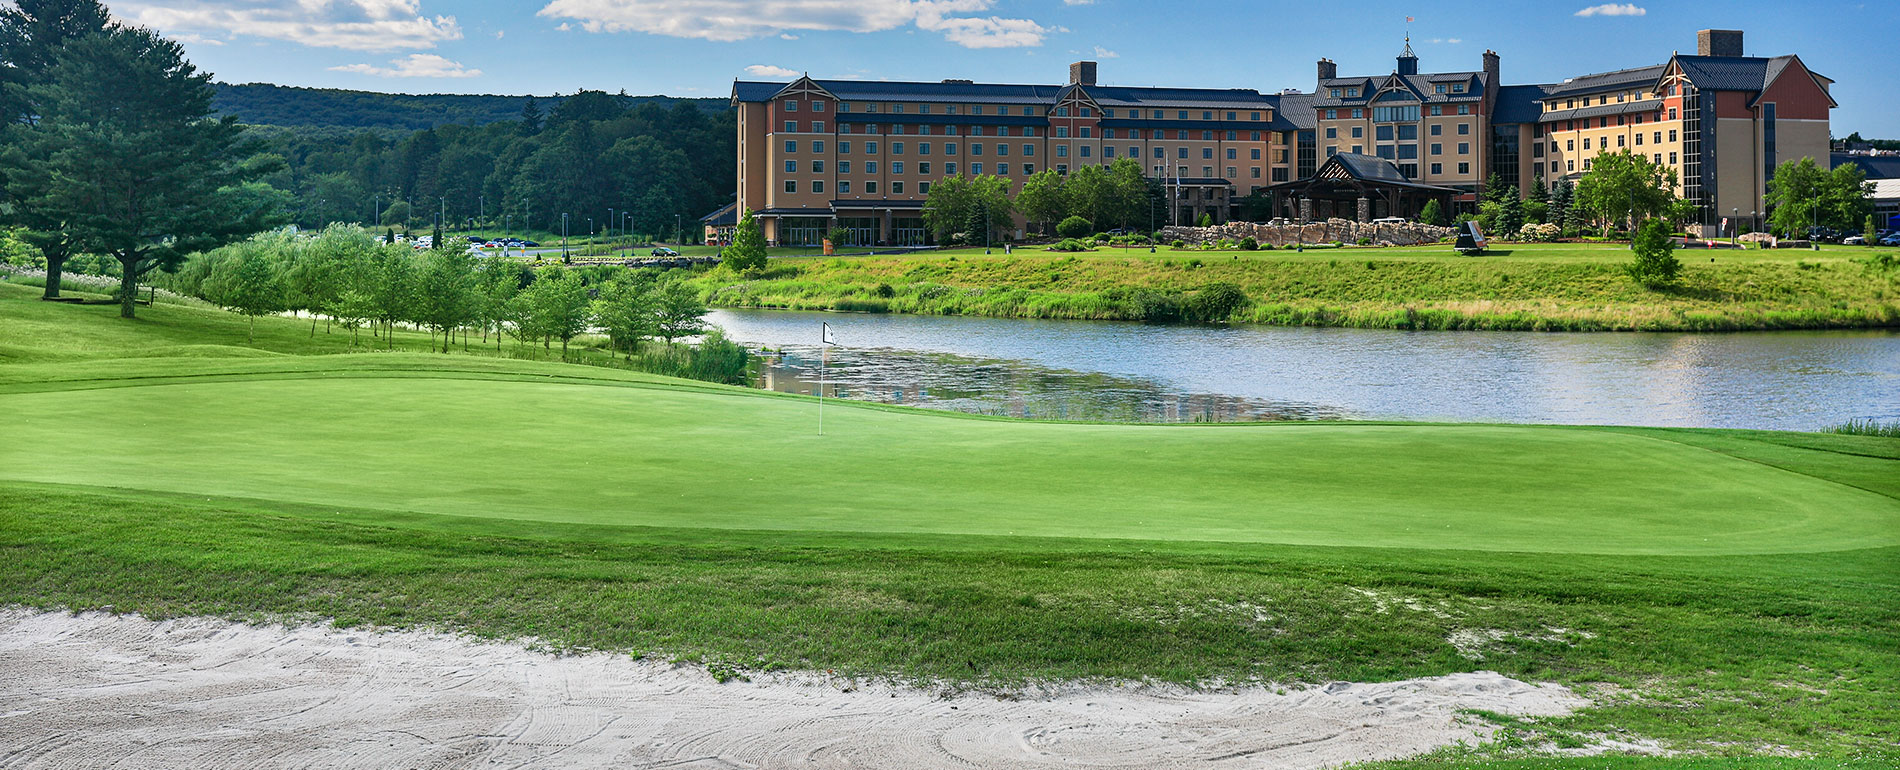 pocono hotel resort - poconos golf course